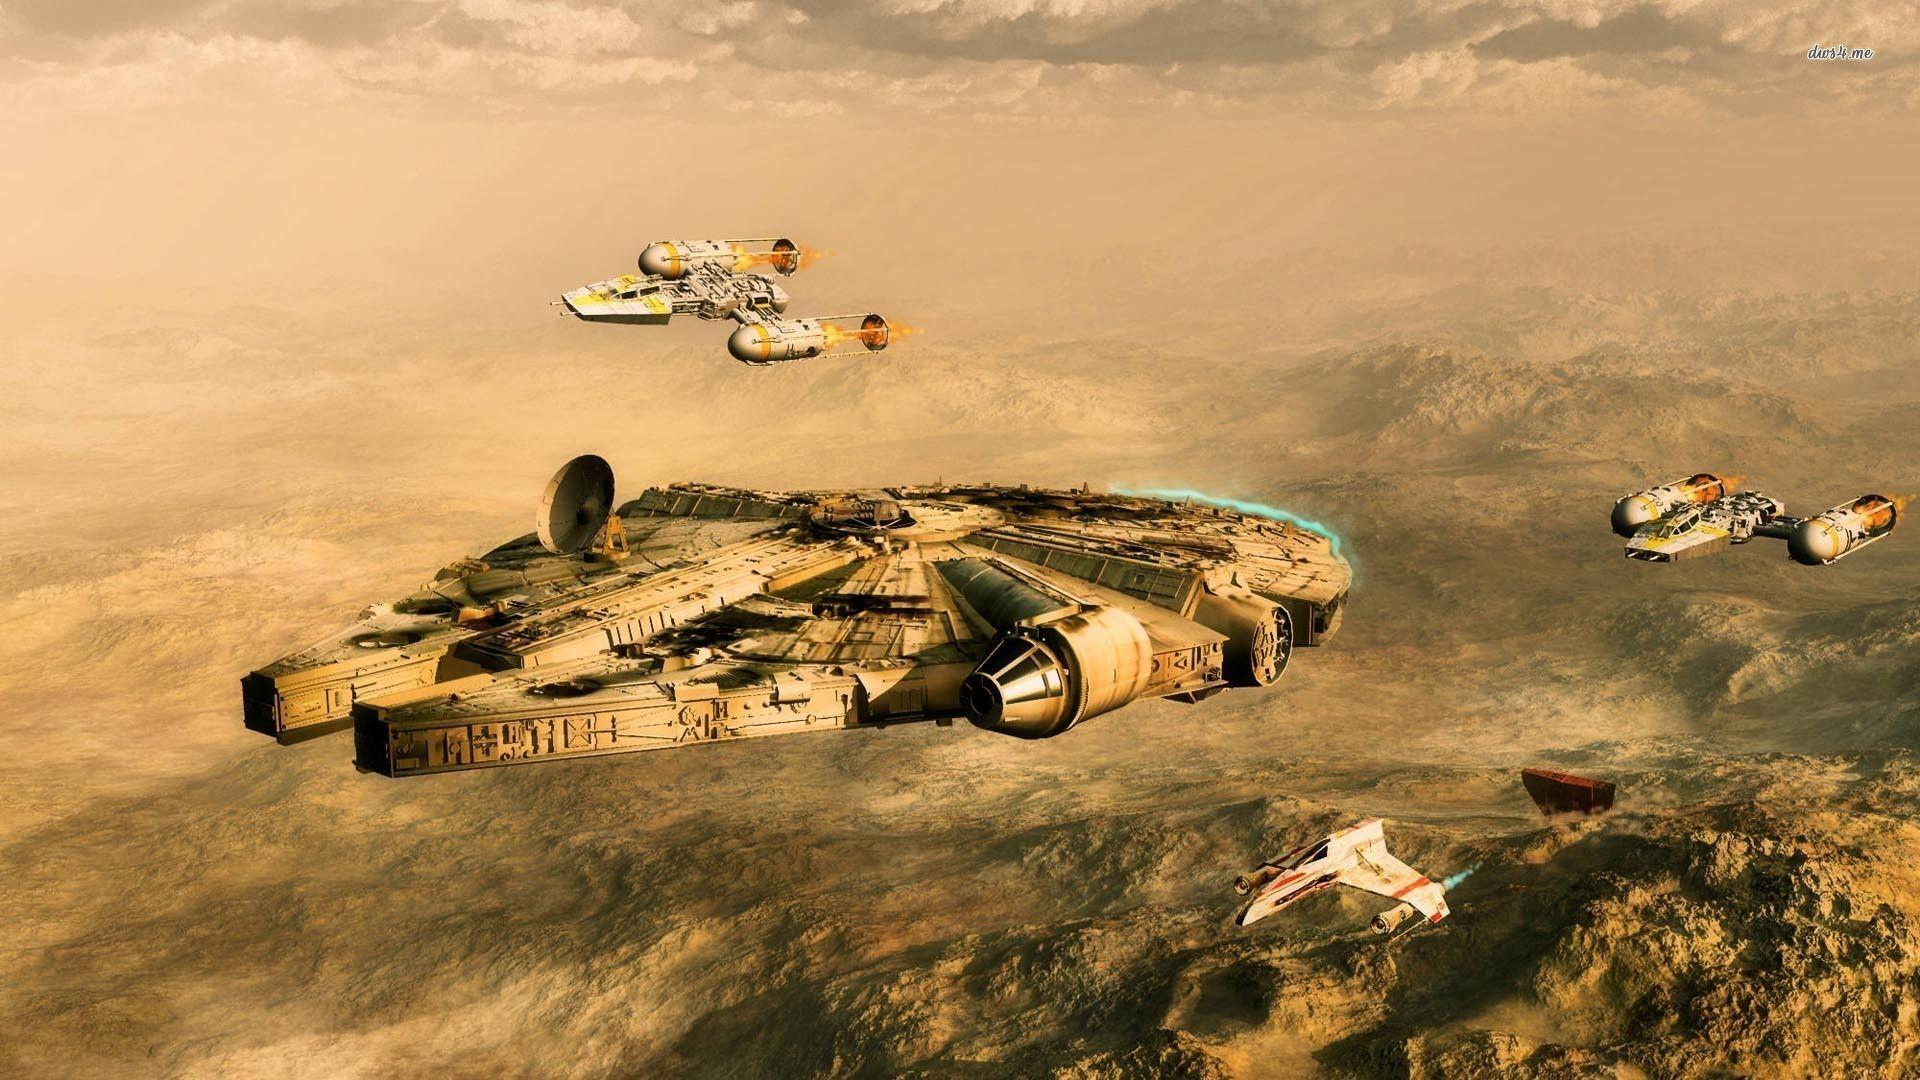 Millenium Falcon Wallpaper on 35463